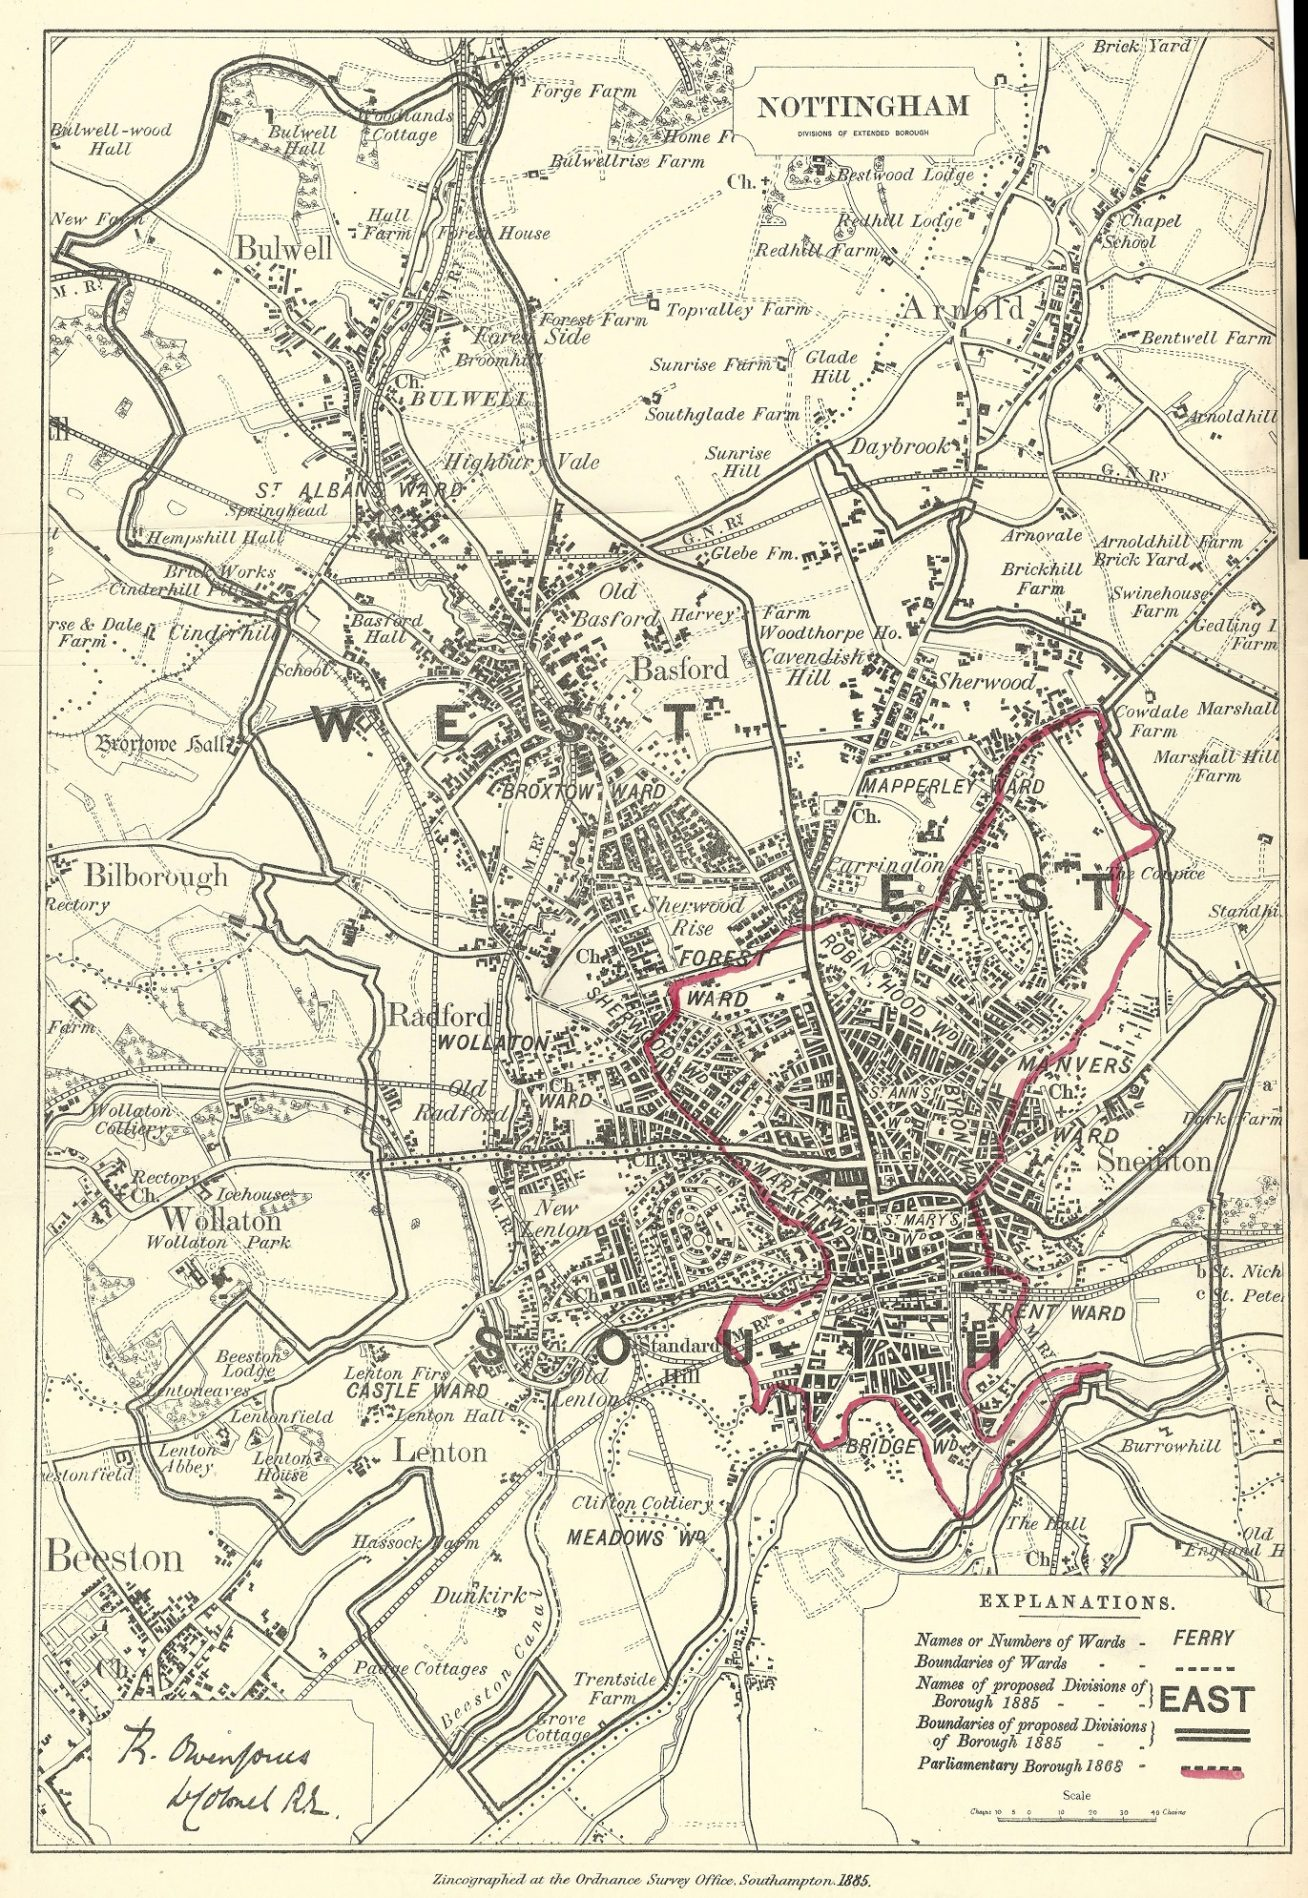 Nottingham Antique Map Boundary Commission 1885 Frontispiece